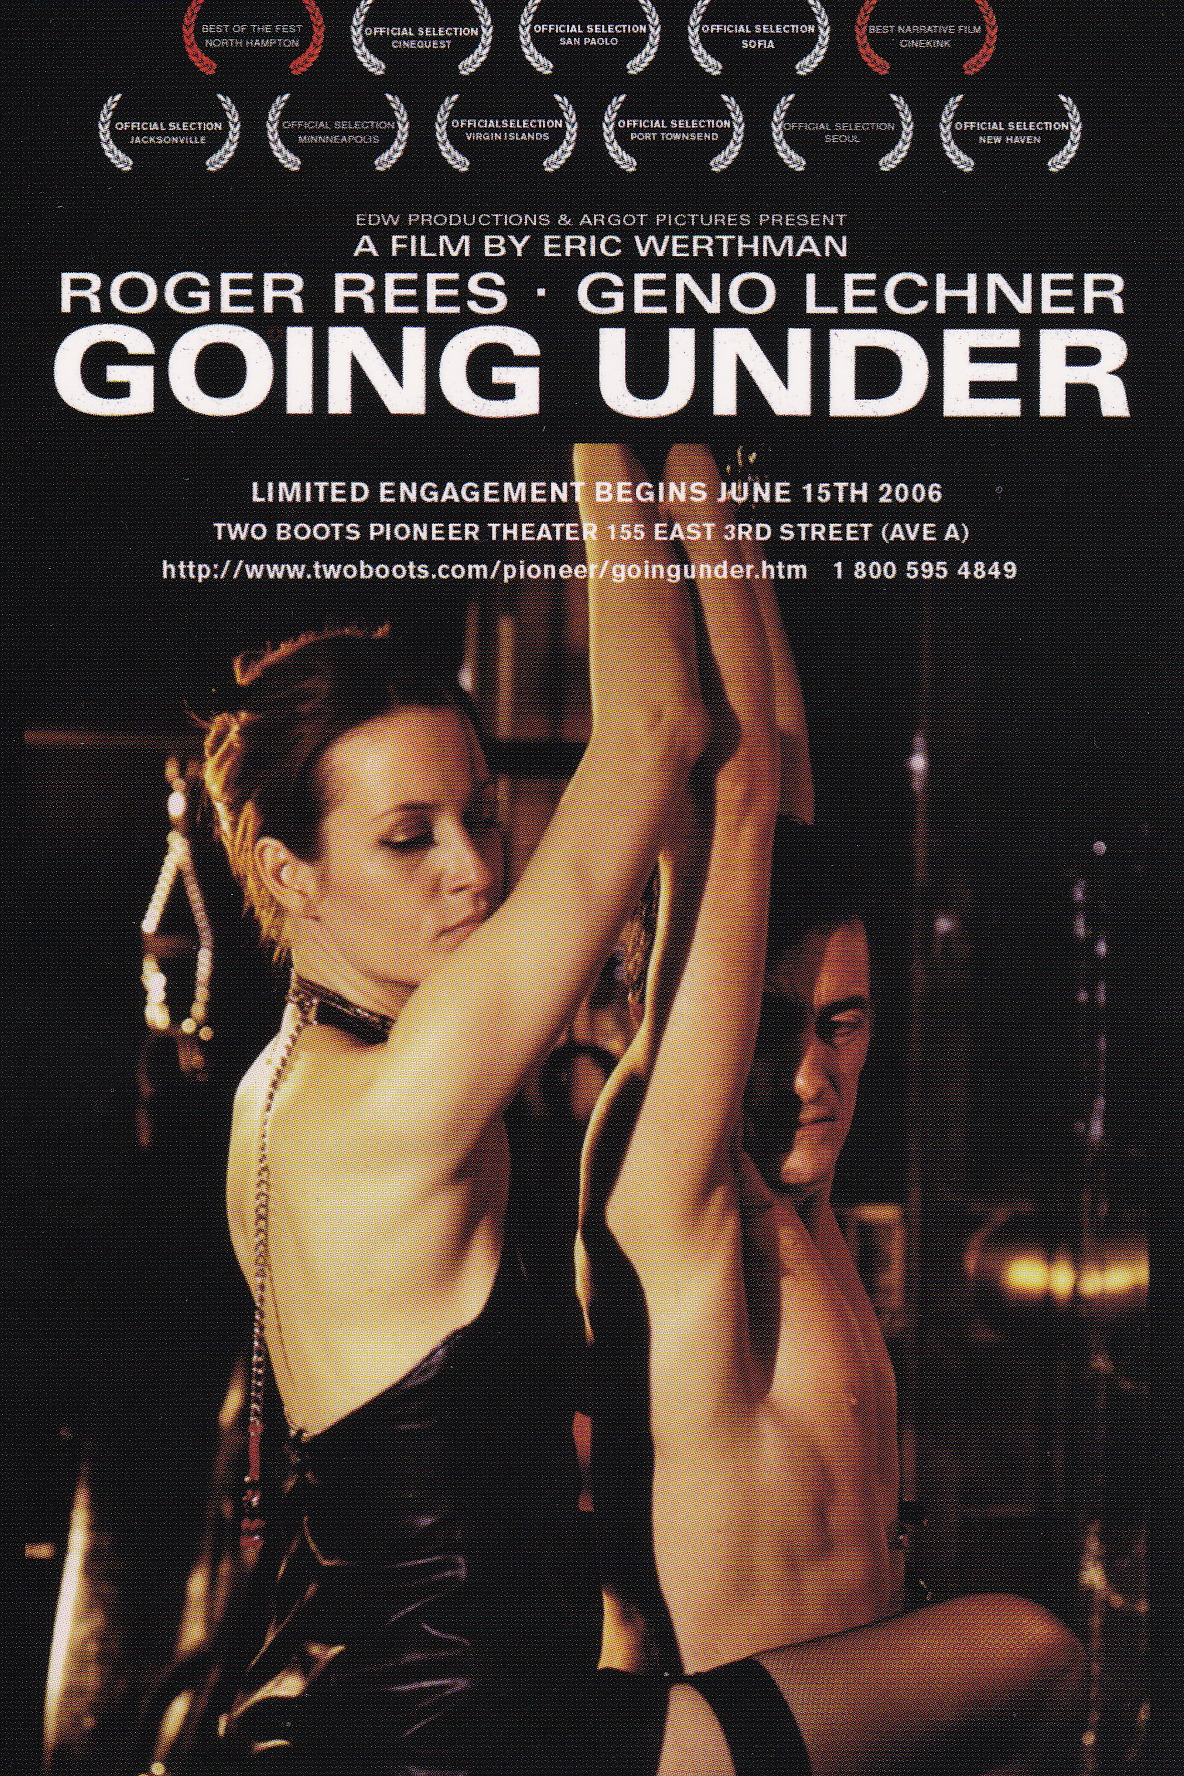 GOING UNDER (2006)   Click on image for link to film page.